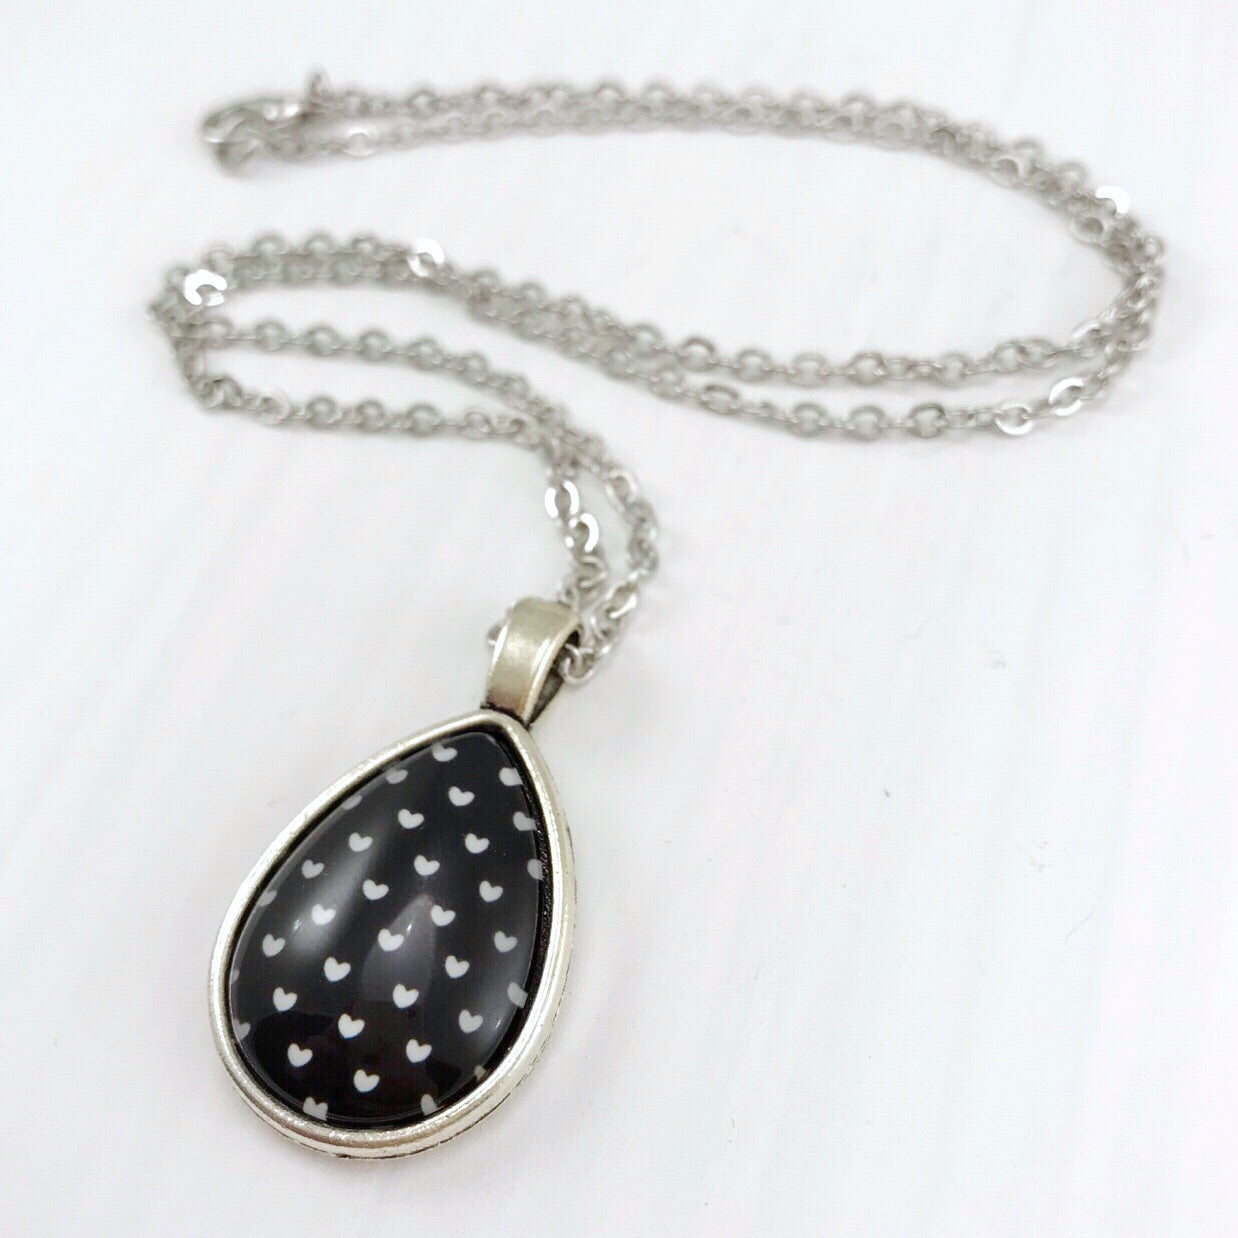 Black and White Hearts Teardrop Necklace - Antique Silver